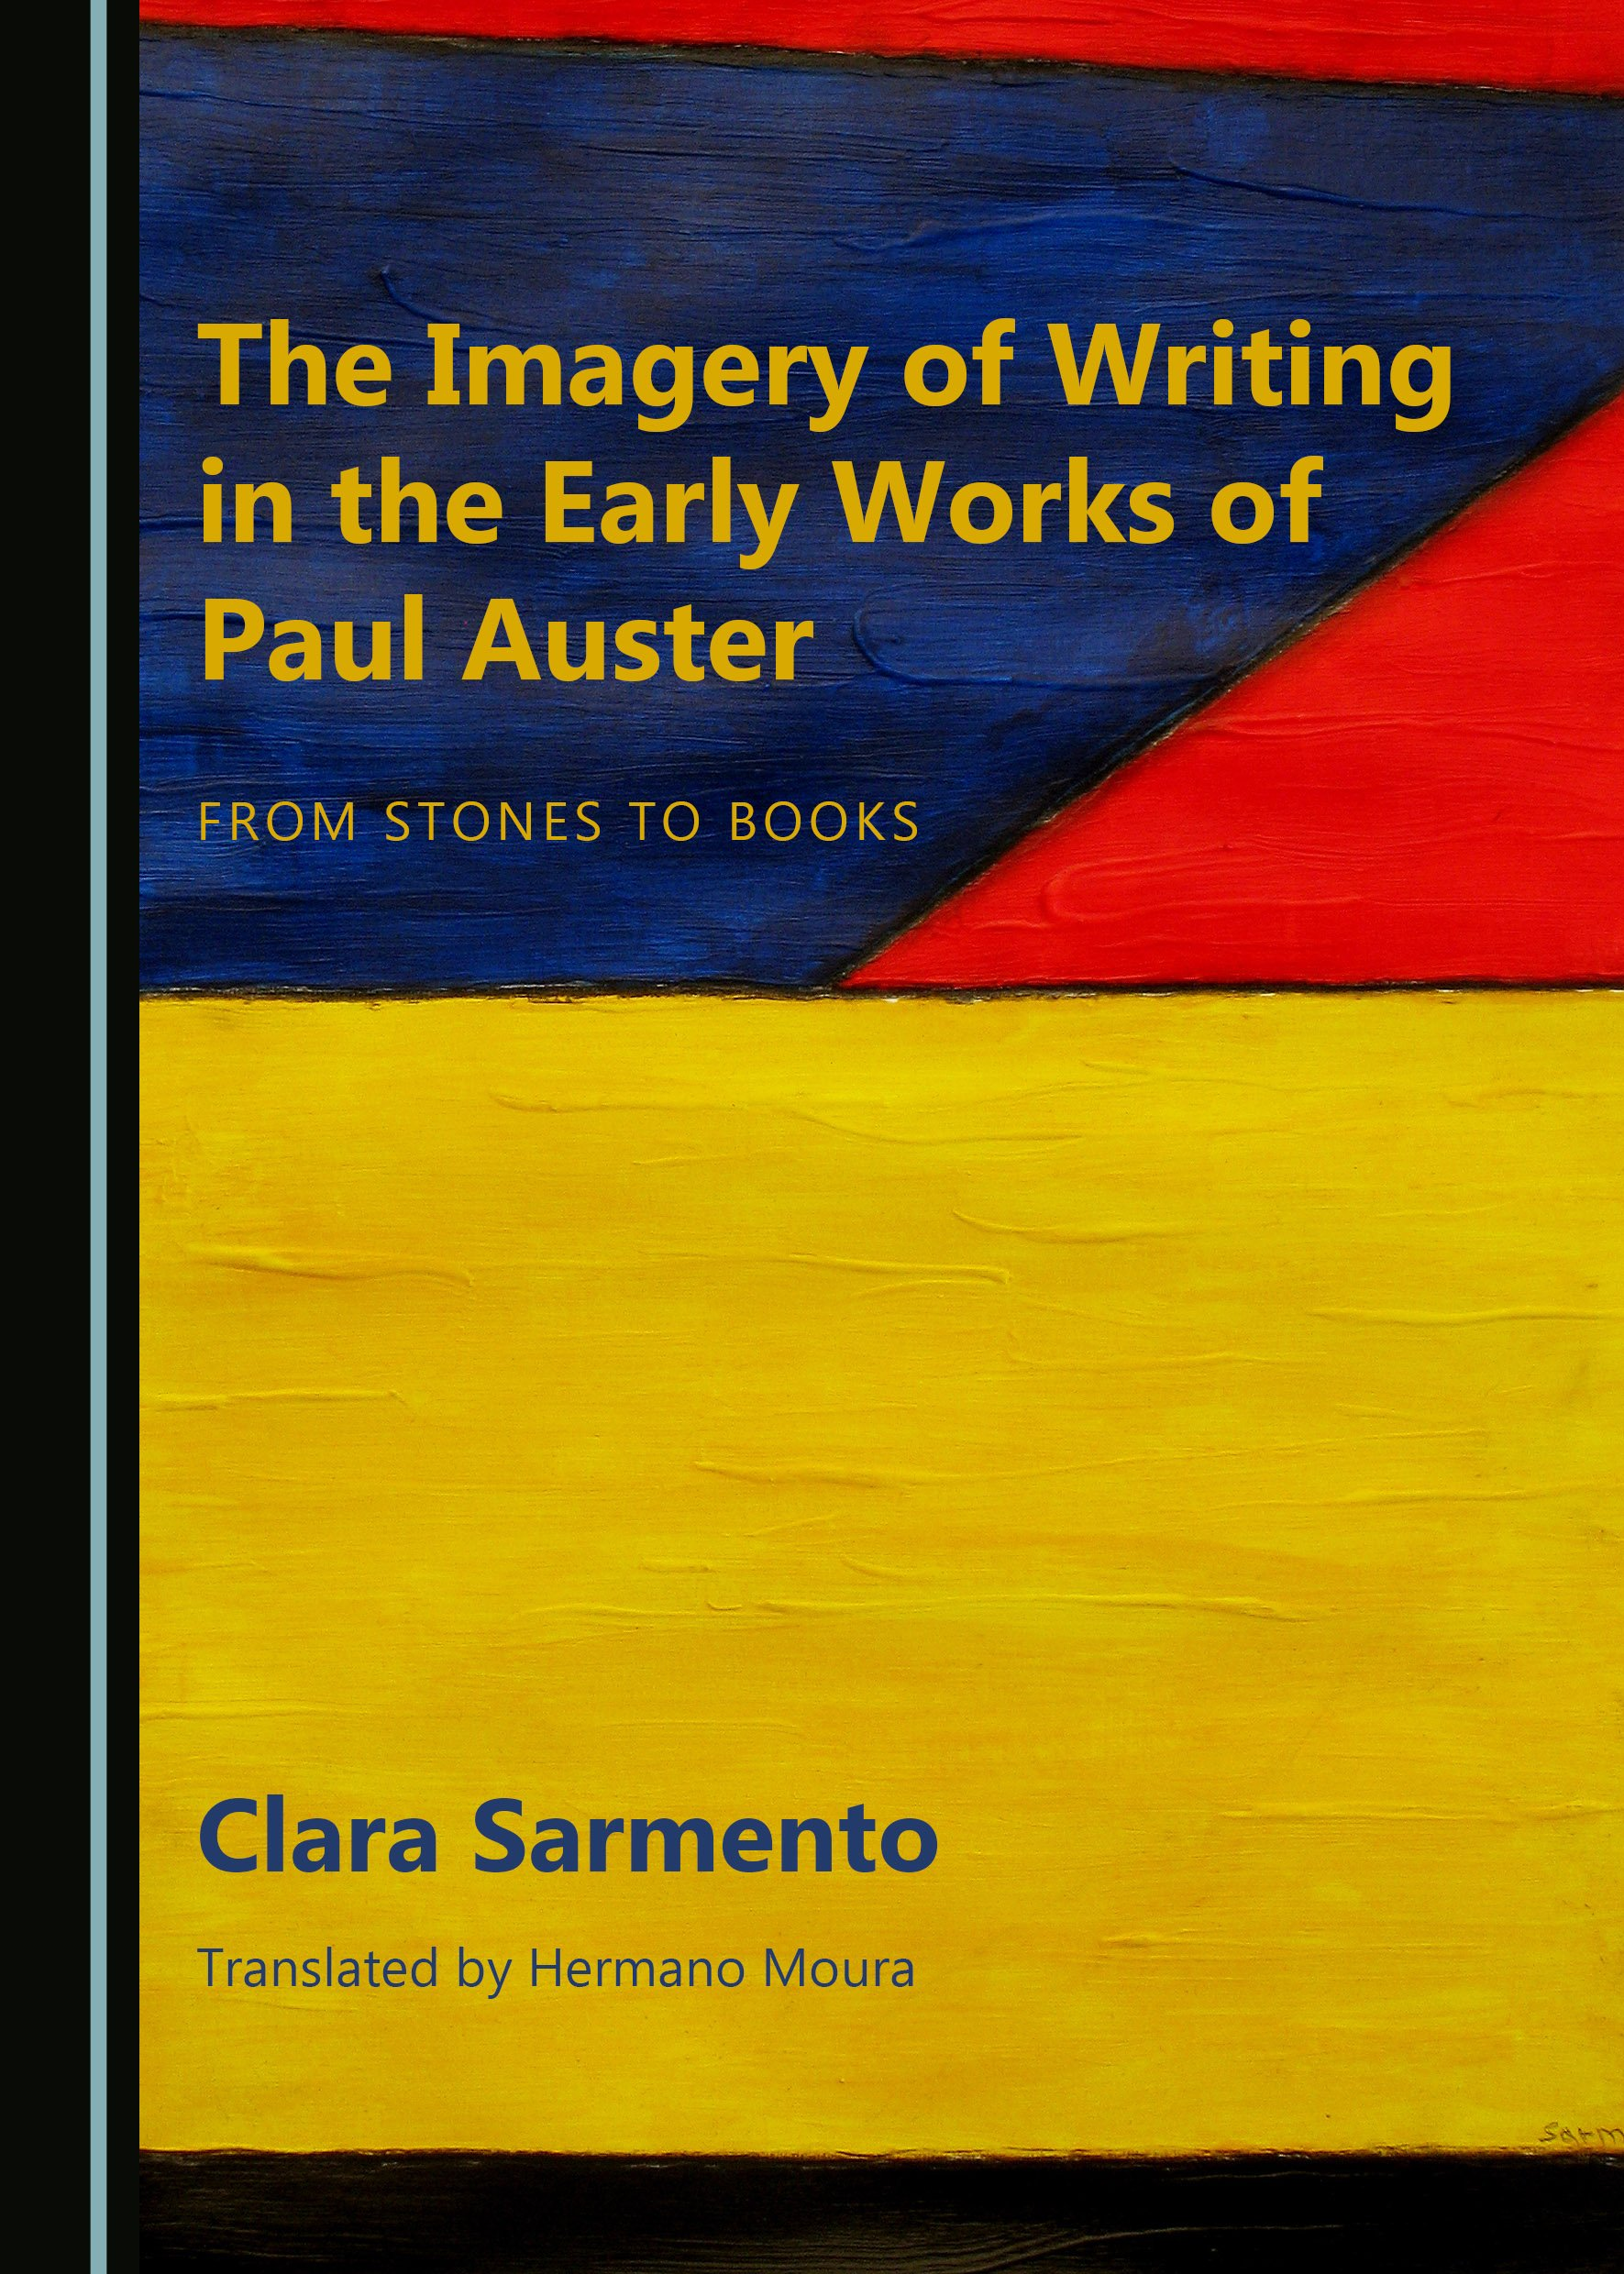 The Imagery of Writing in the Early Works of Paul Auster: From Stones to Books